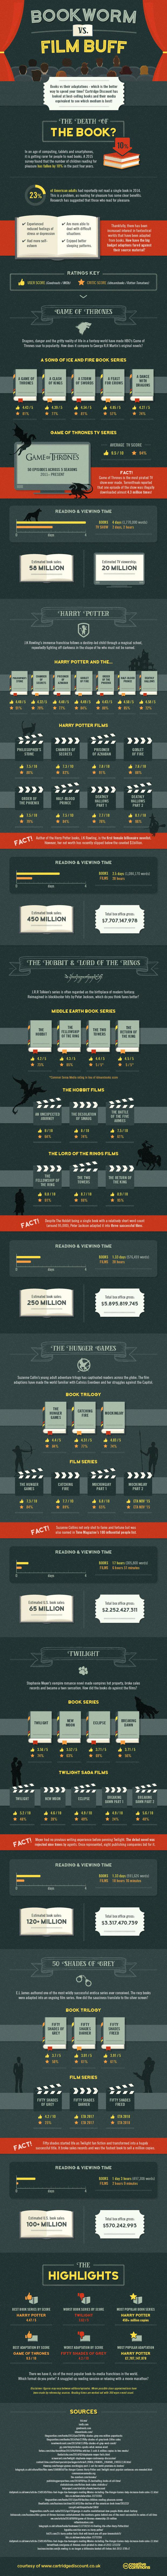 Bookworms vs Movie Buffs